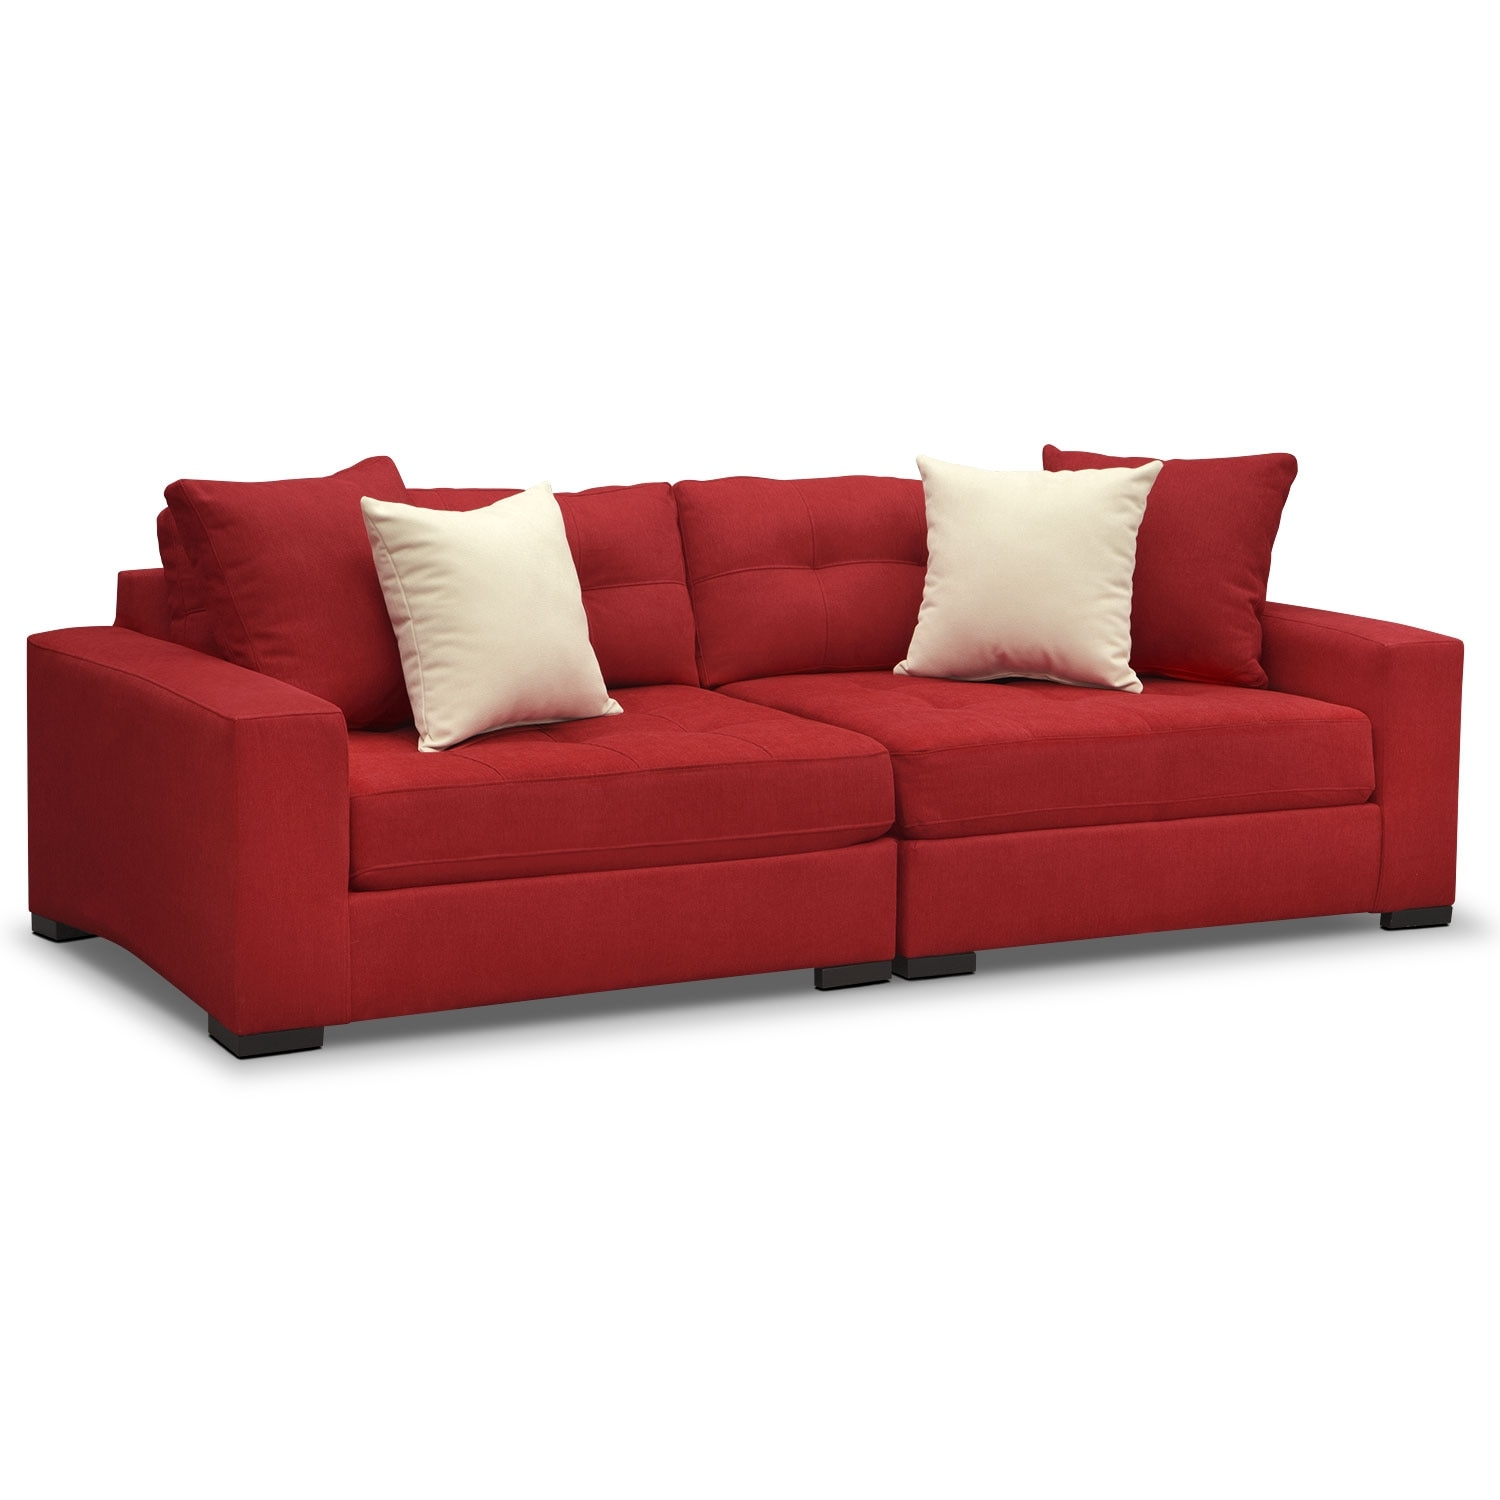 Living Room Furniture - Venti Modular Sofa - Red